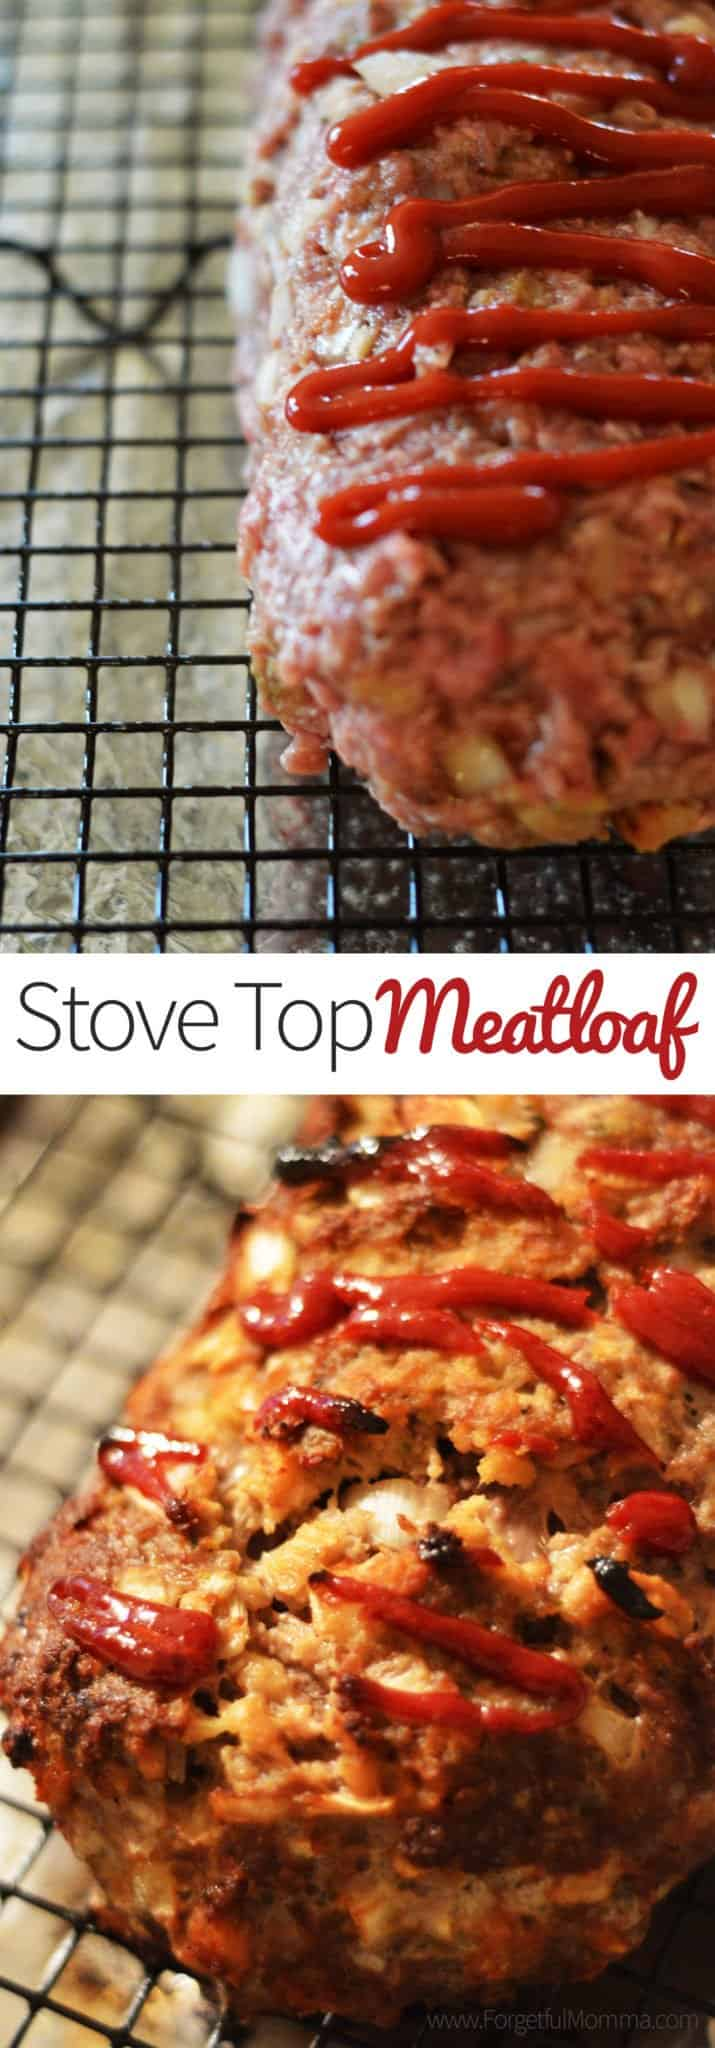 Stove Top Meatloaf